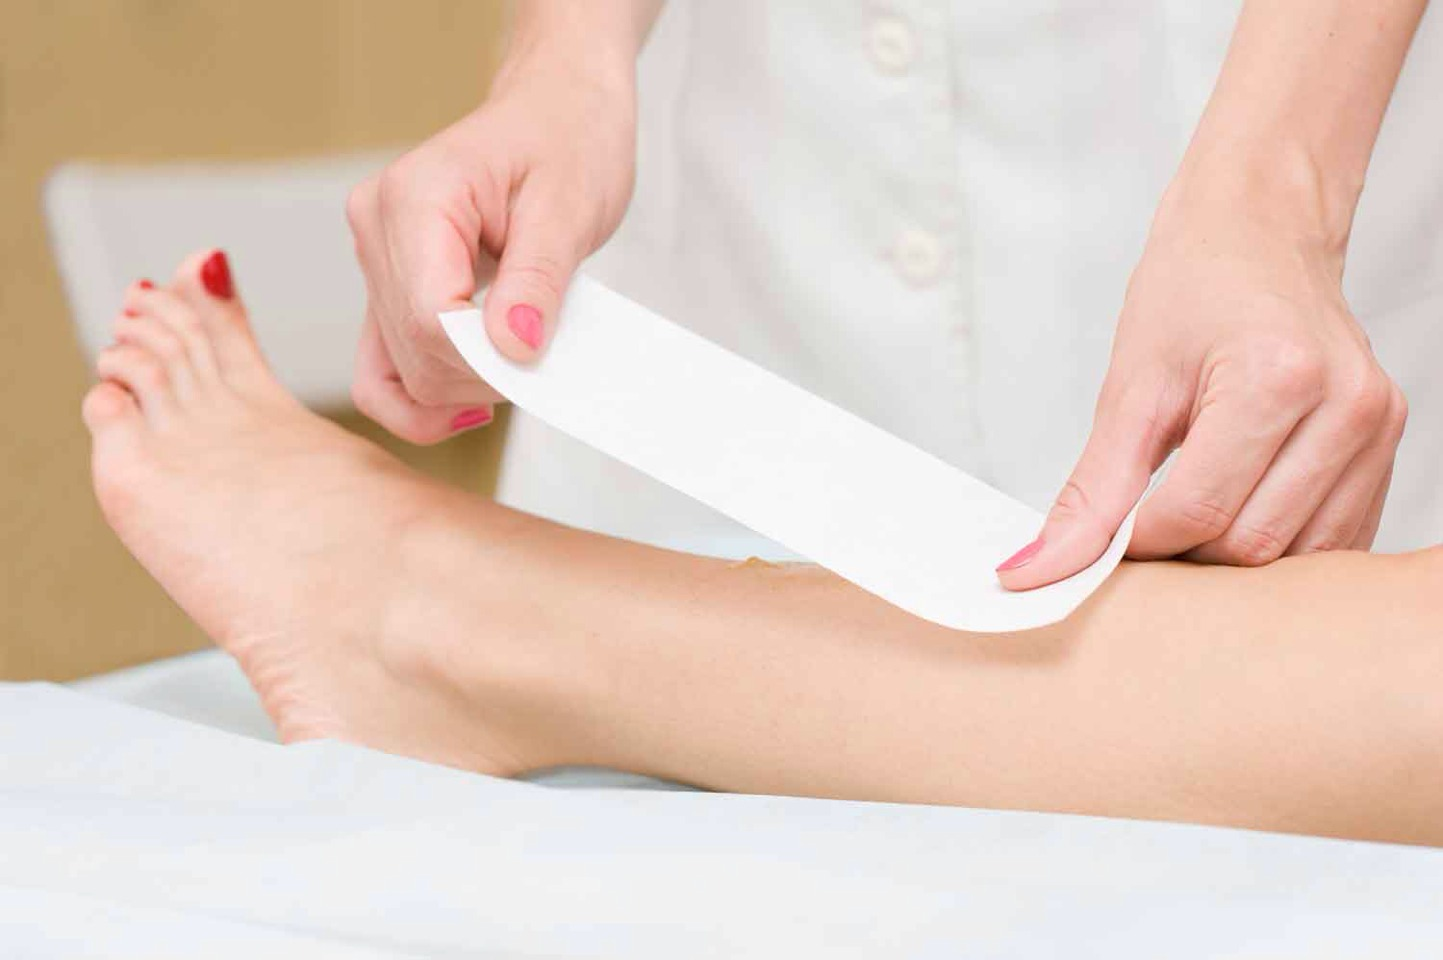 3. Avoid waxing within a week before your period, when you're extra-sensitive to pain. Instead, aim to have it done a week or two after, when your pain threshold is higher